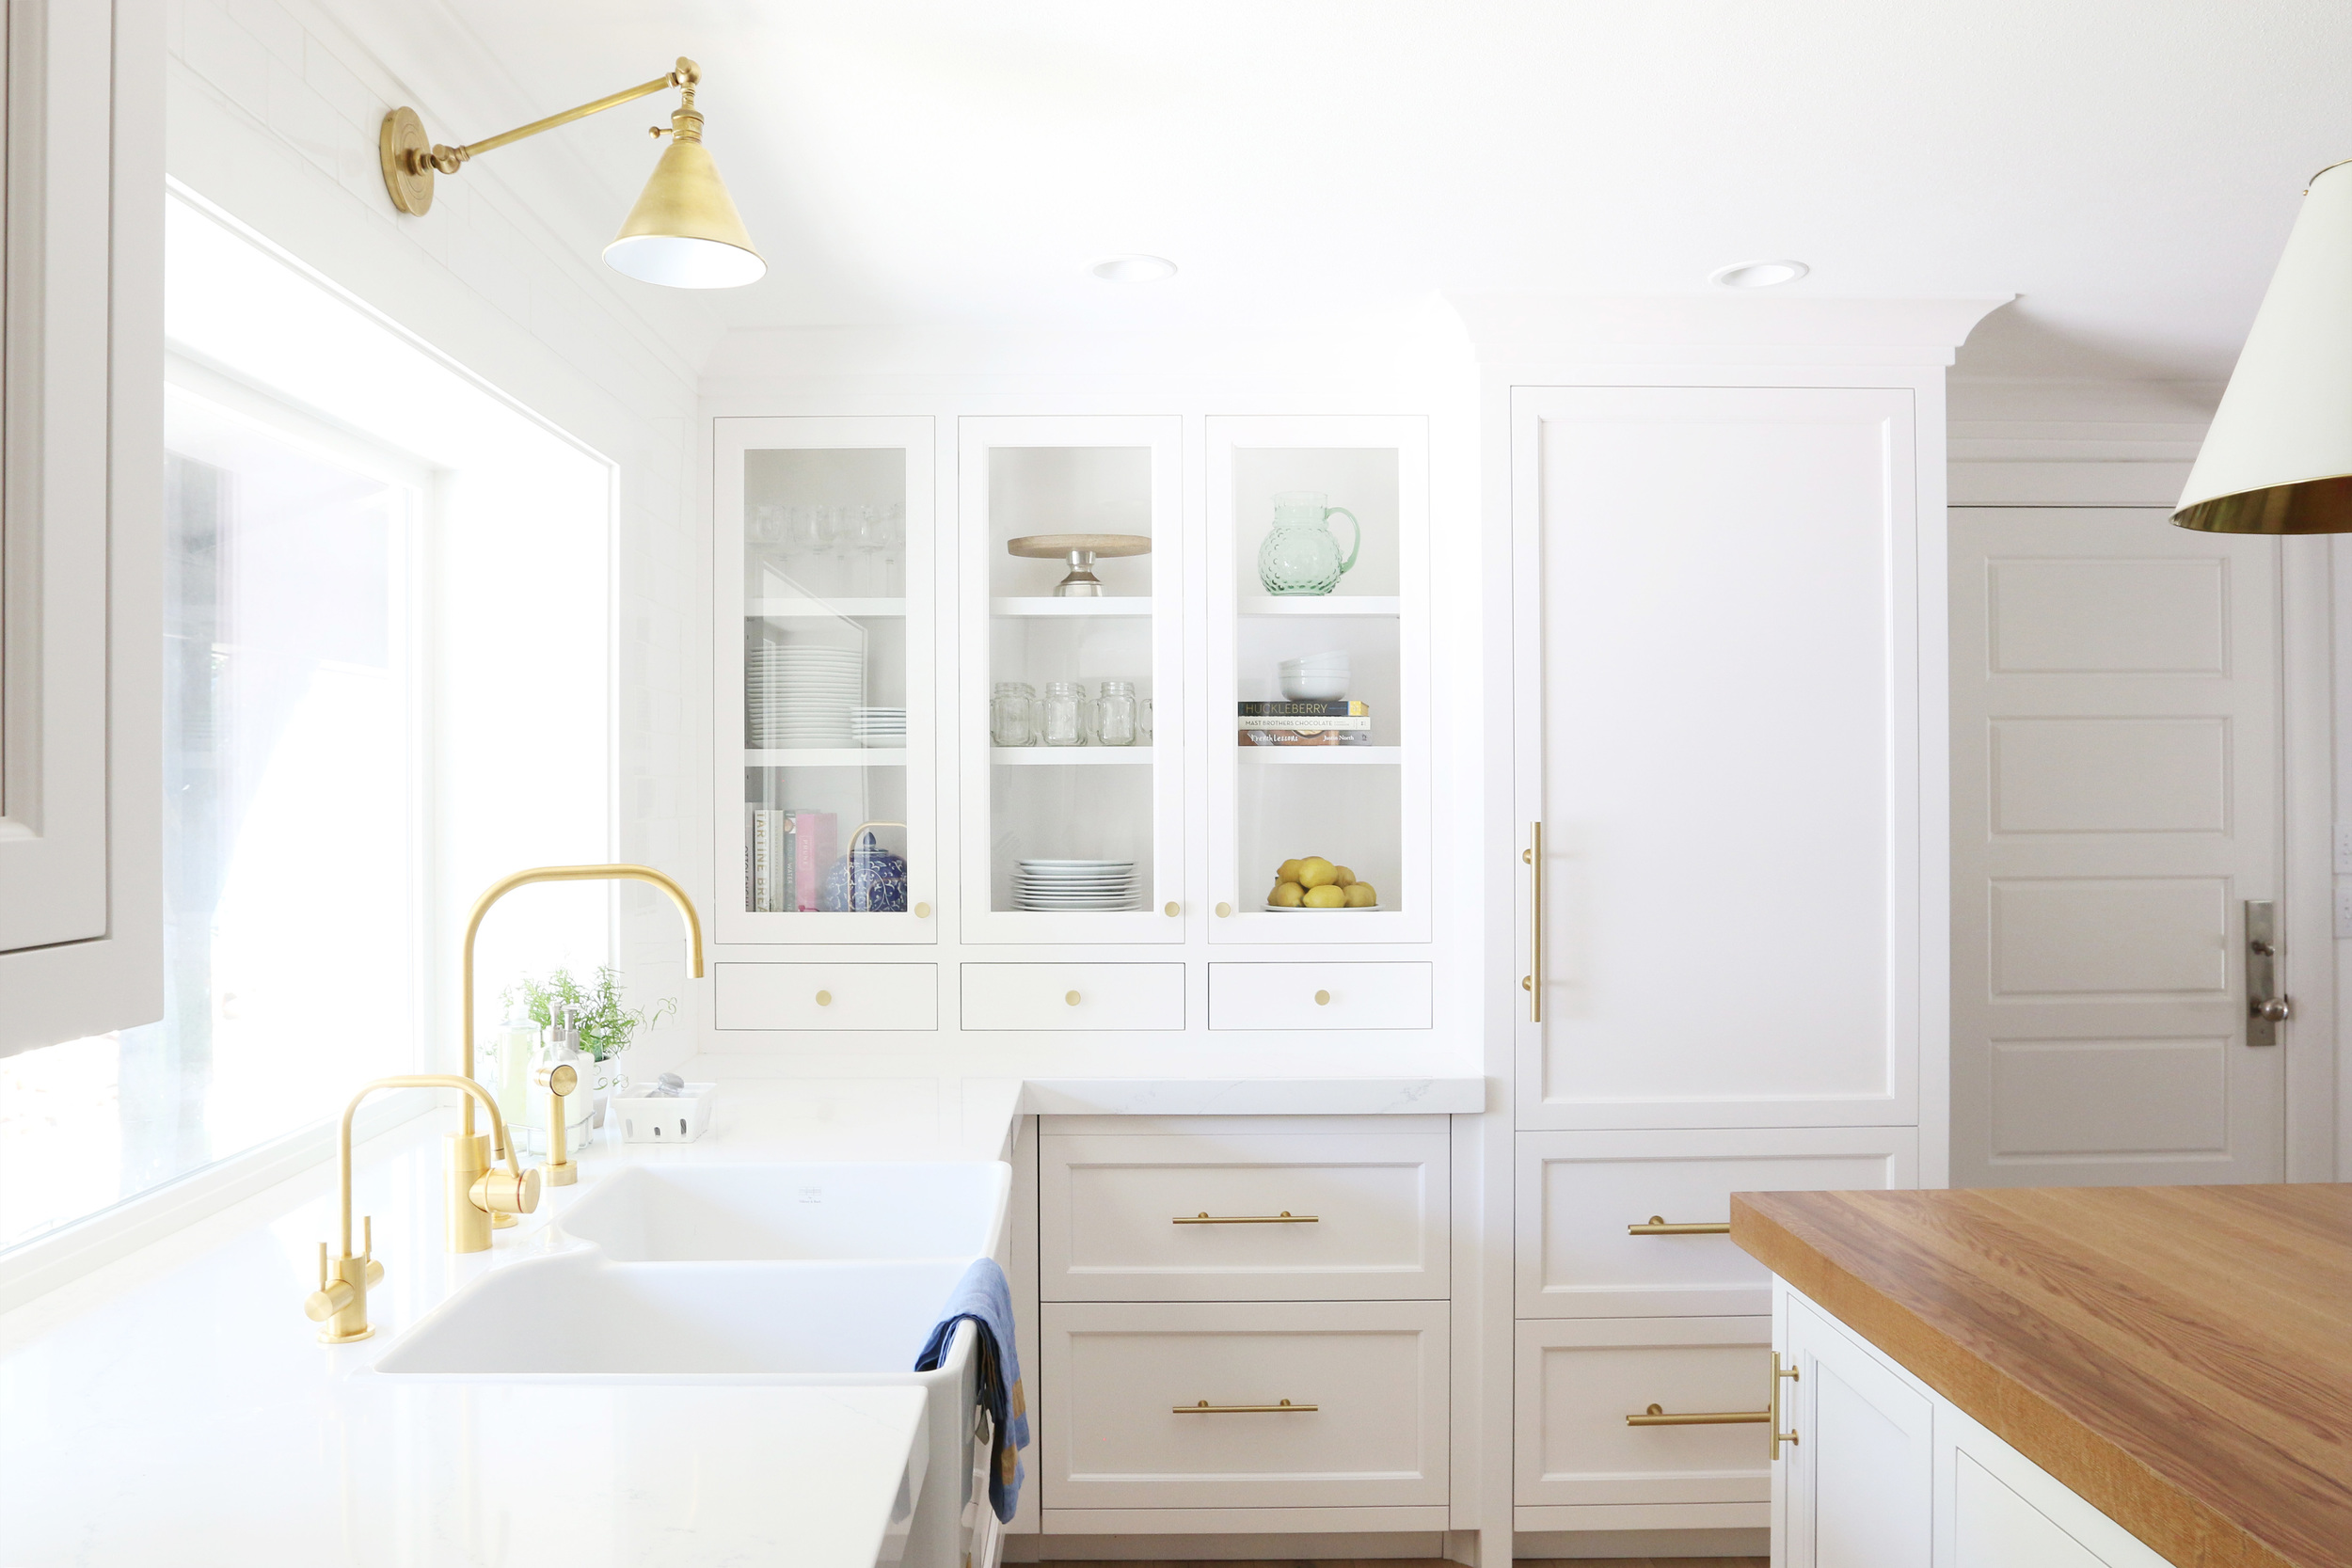 Studio McGee_White and Gold Kitchen 14.jpg